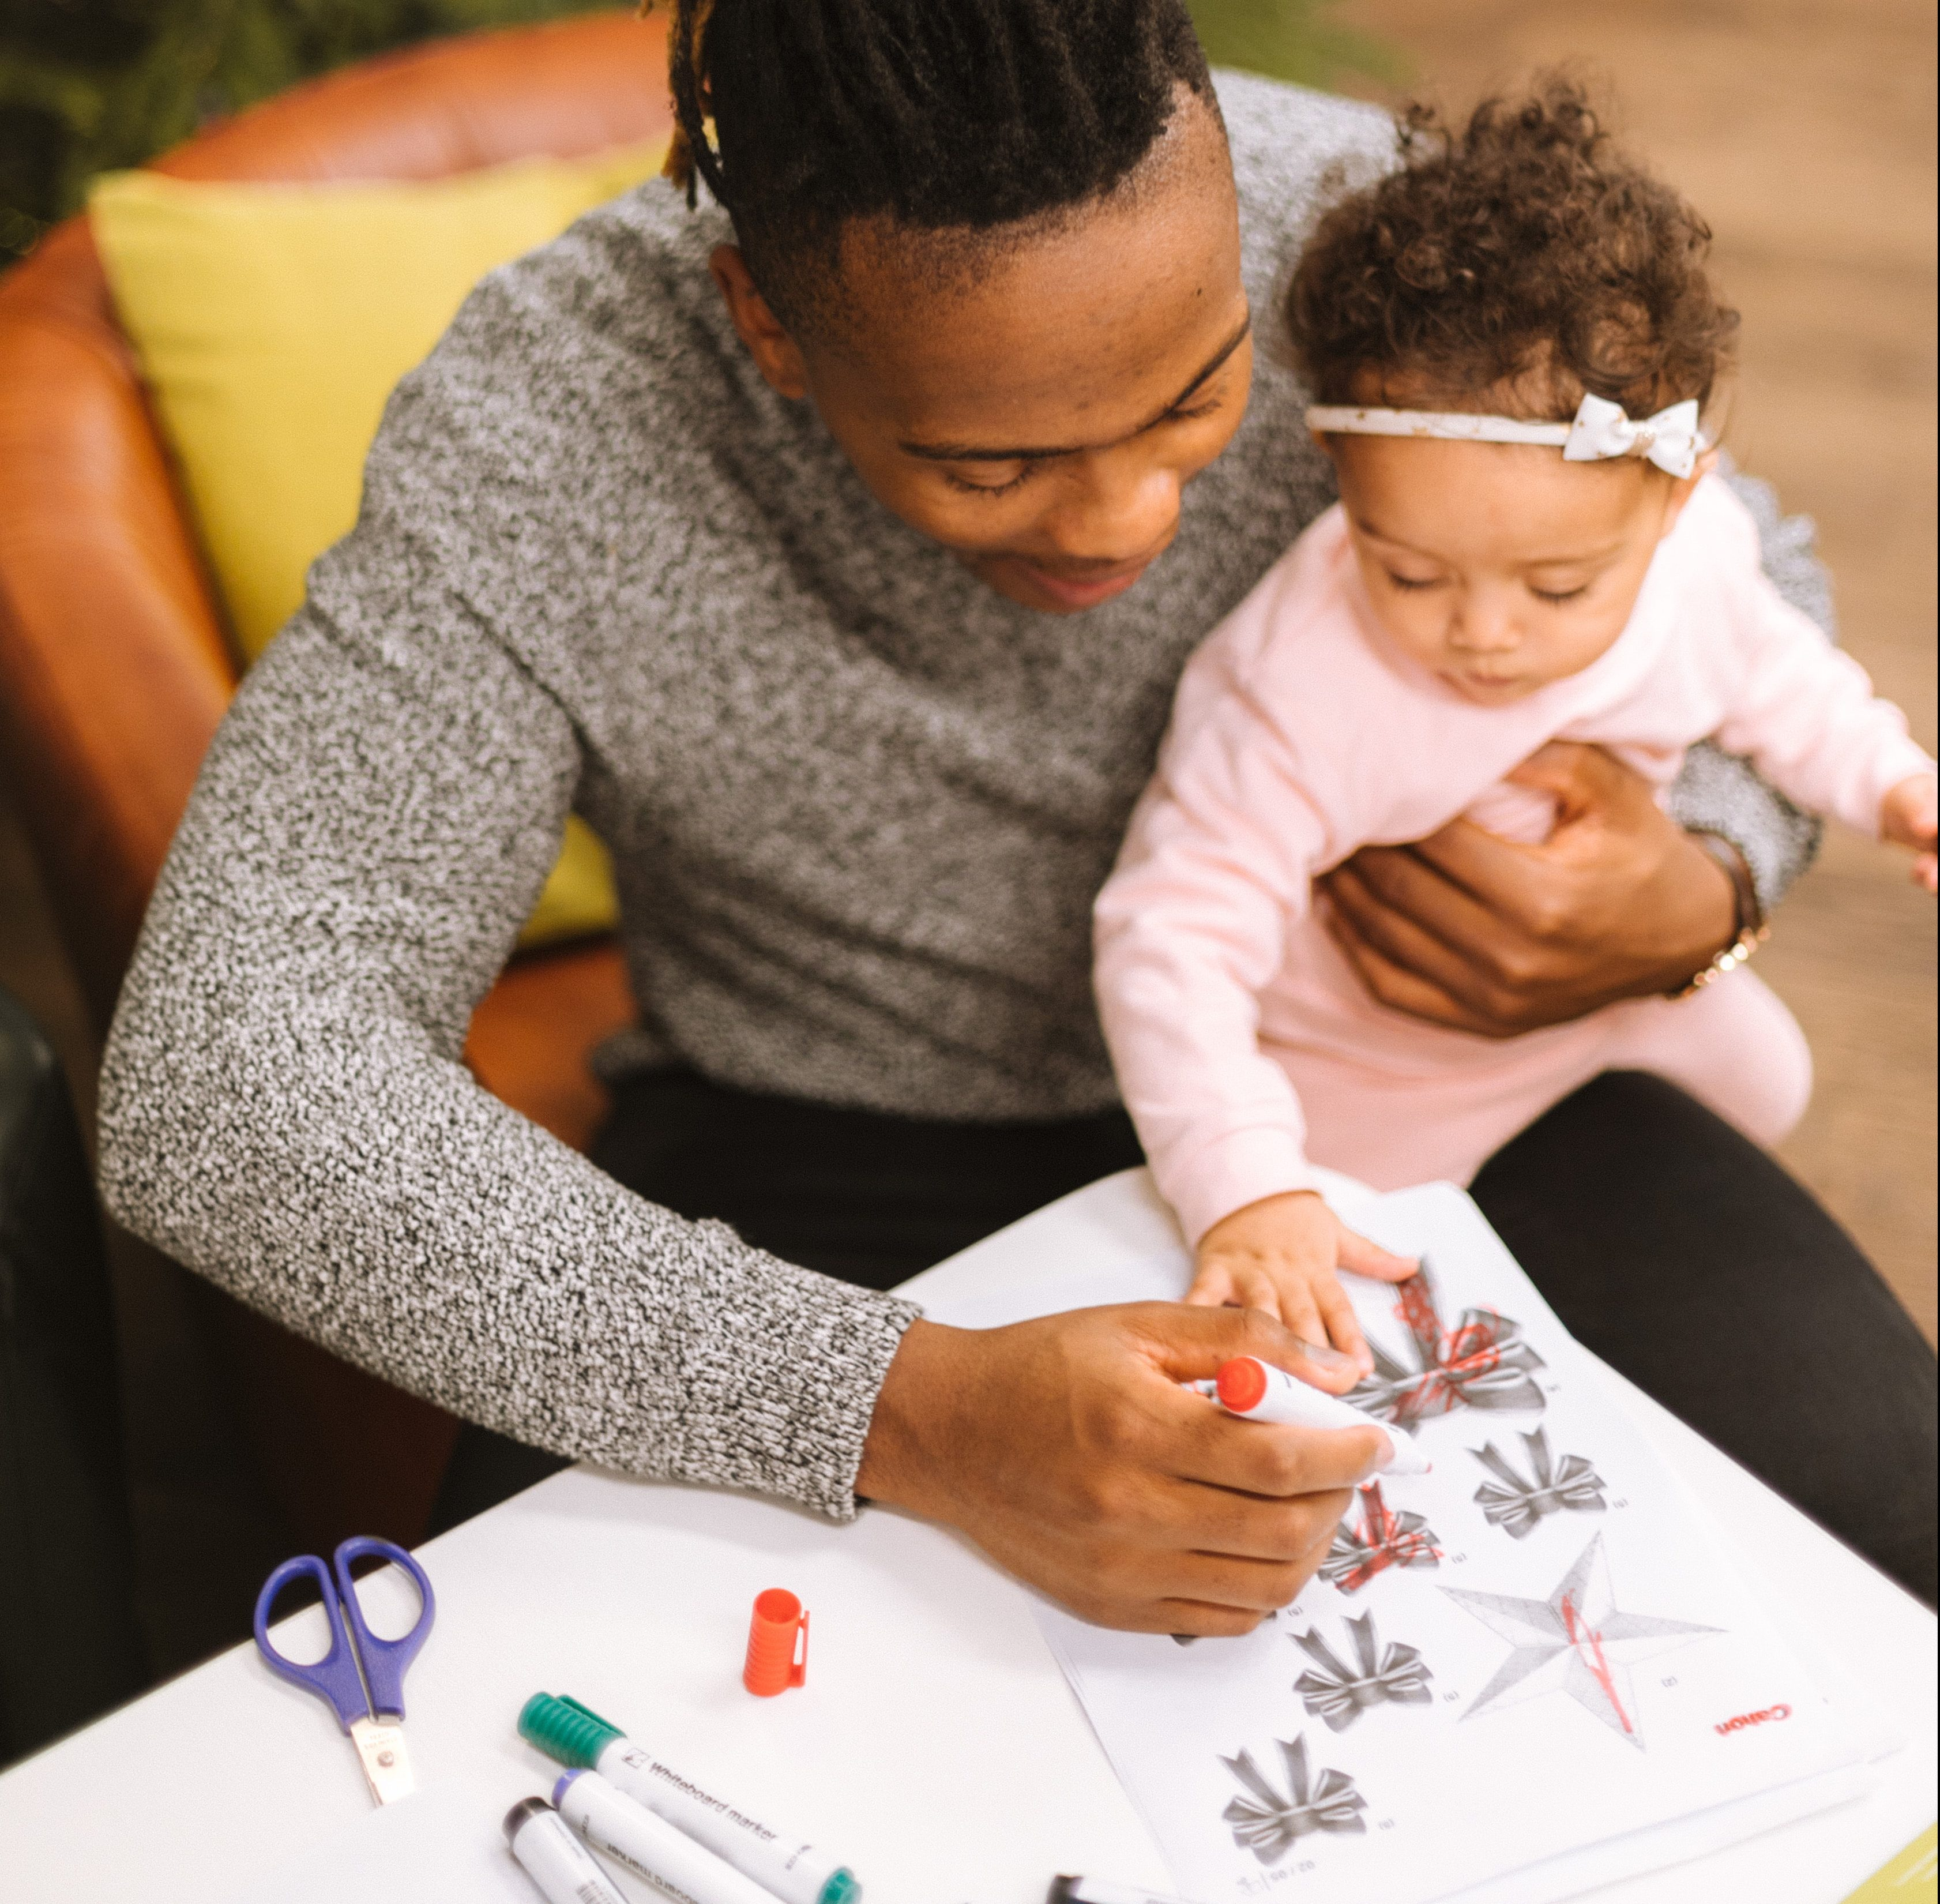 black man holding small child and drawing together with markers